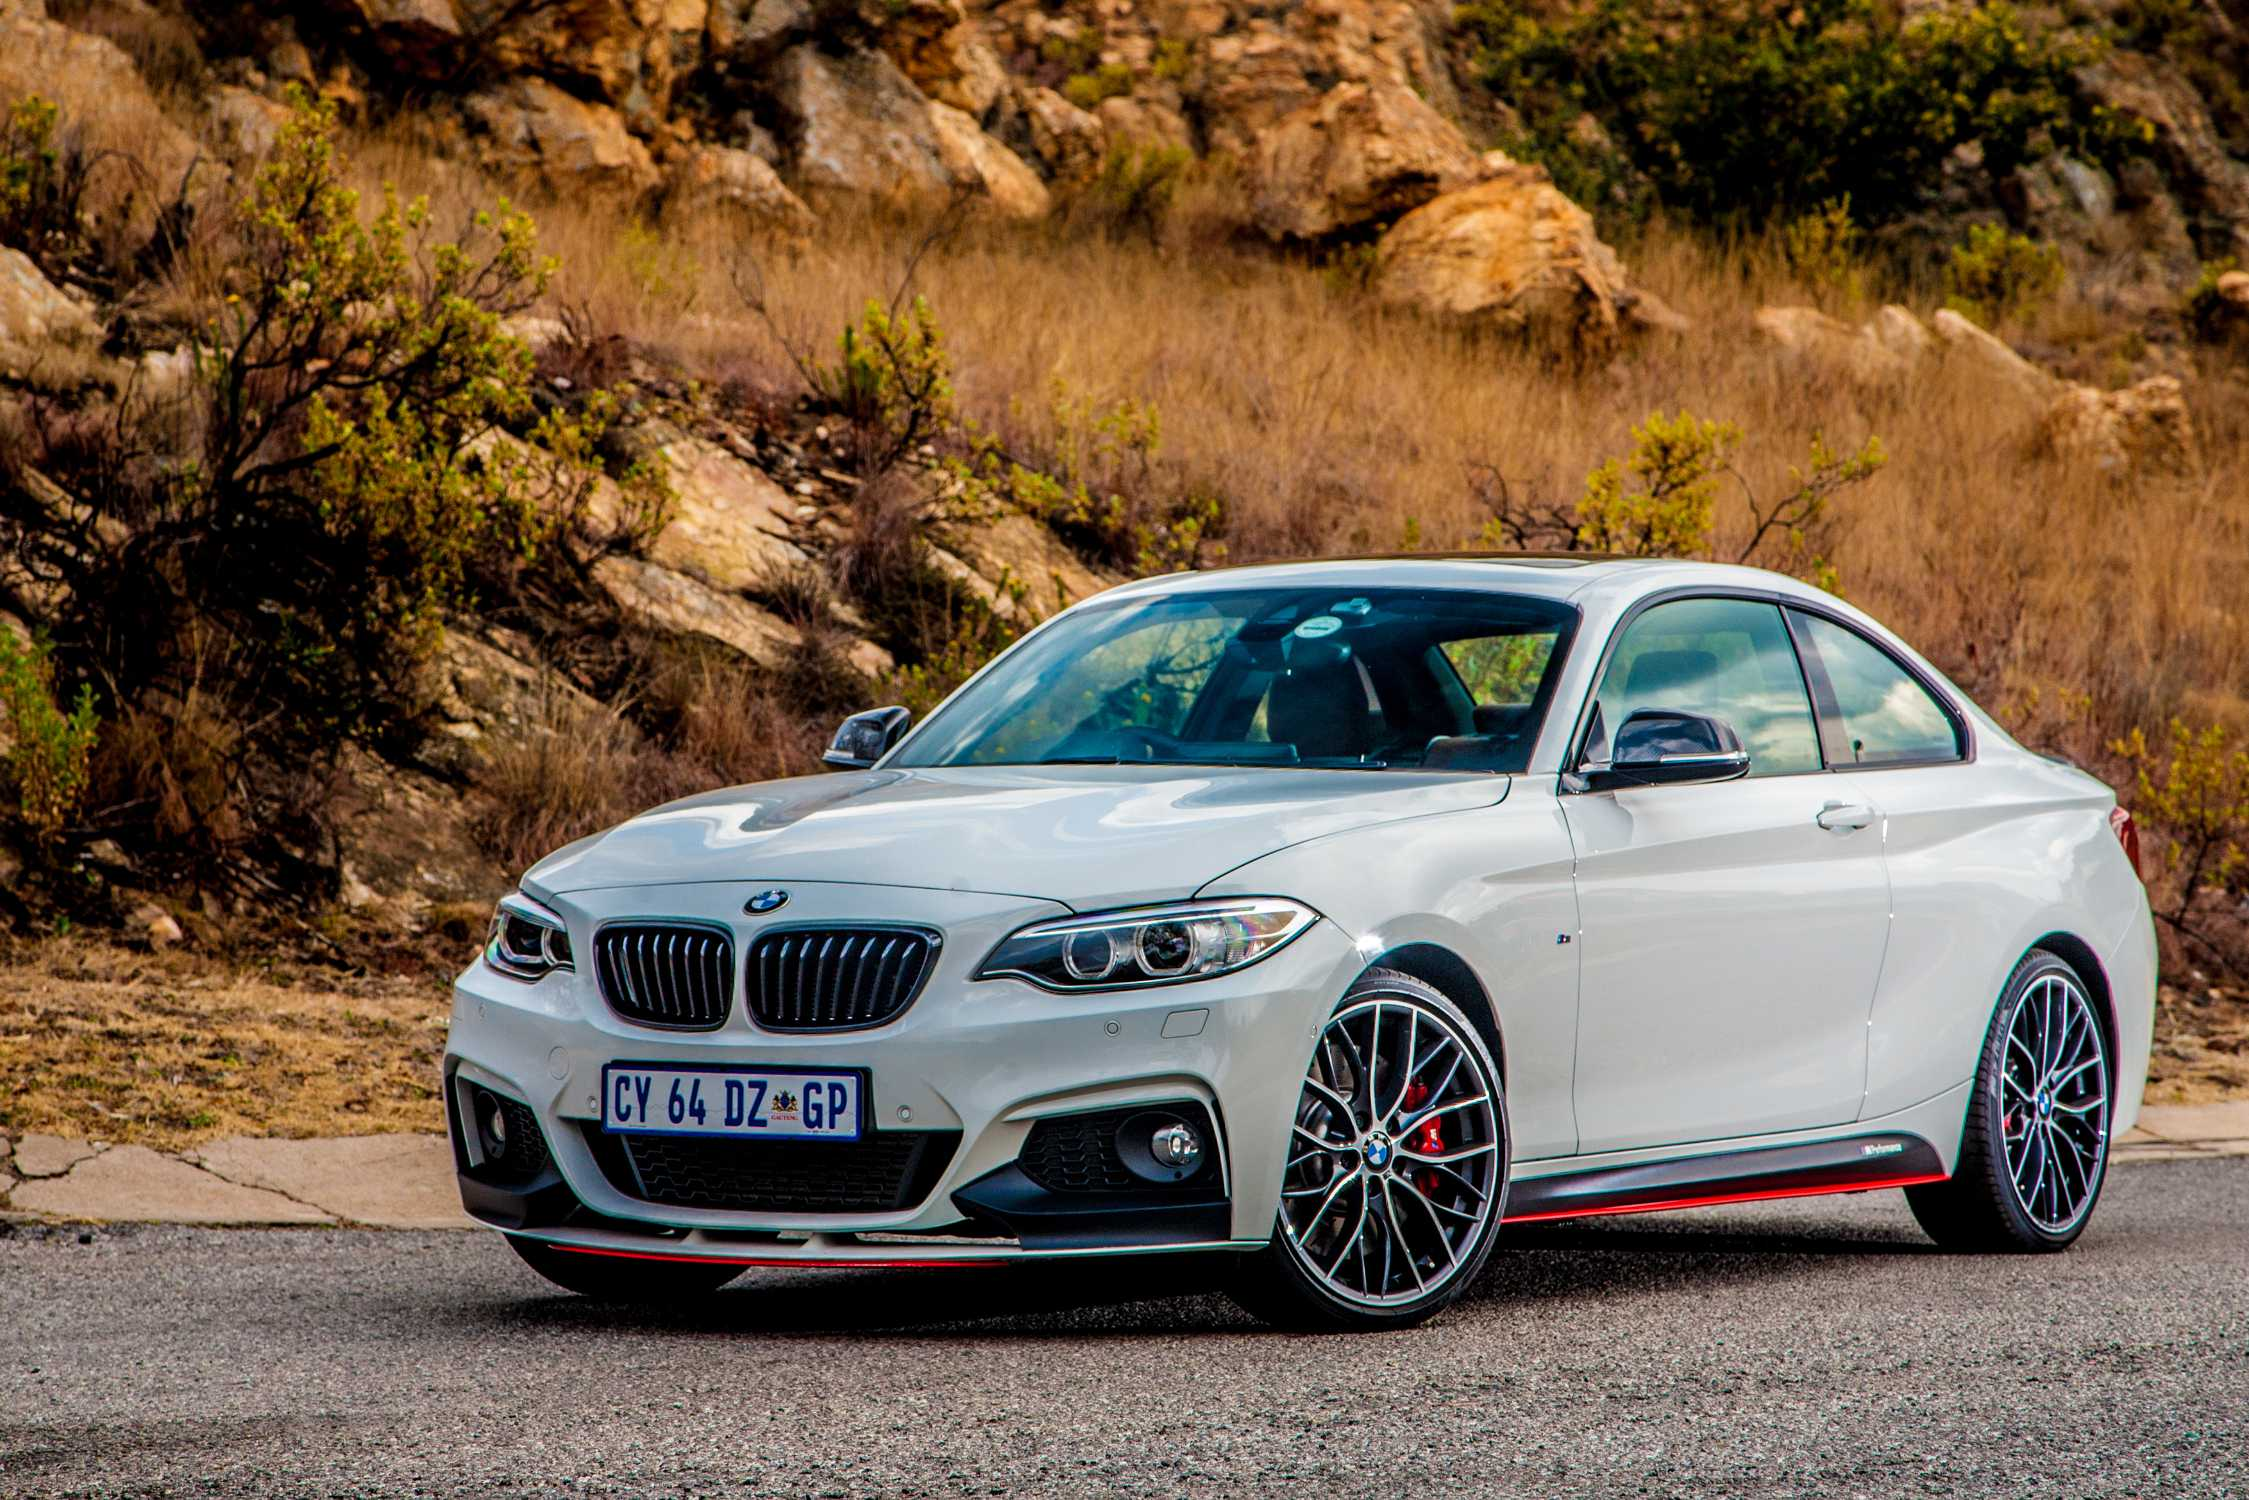 Bmw m performance parts for the bmw 2 series coup now for South motors bmw parts